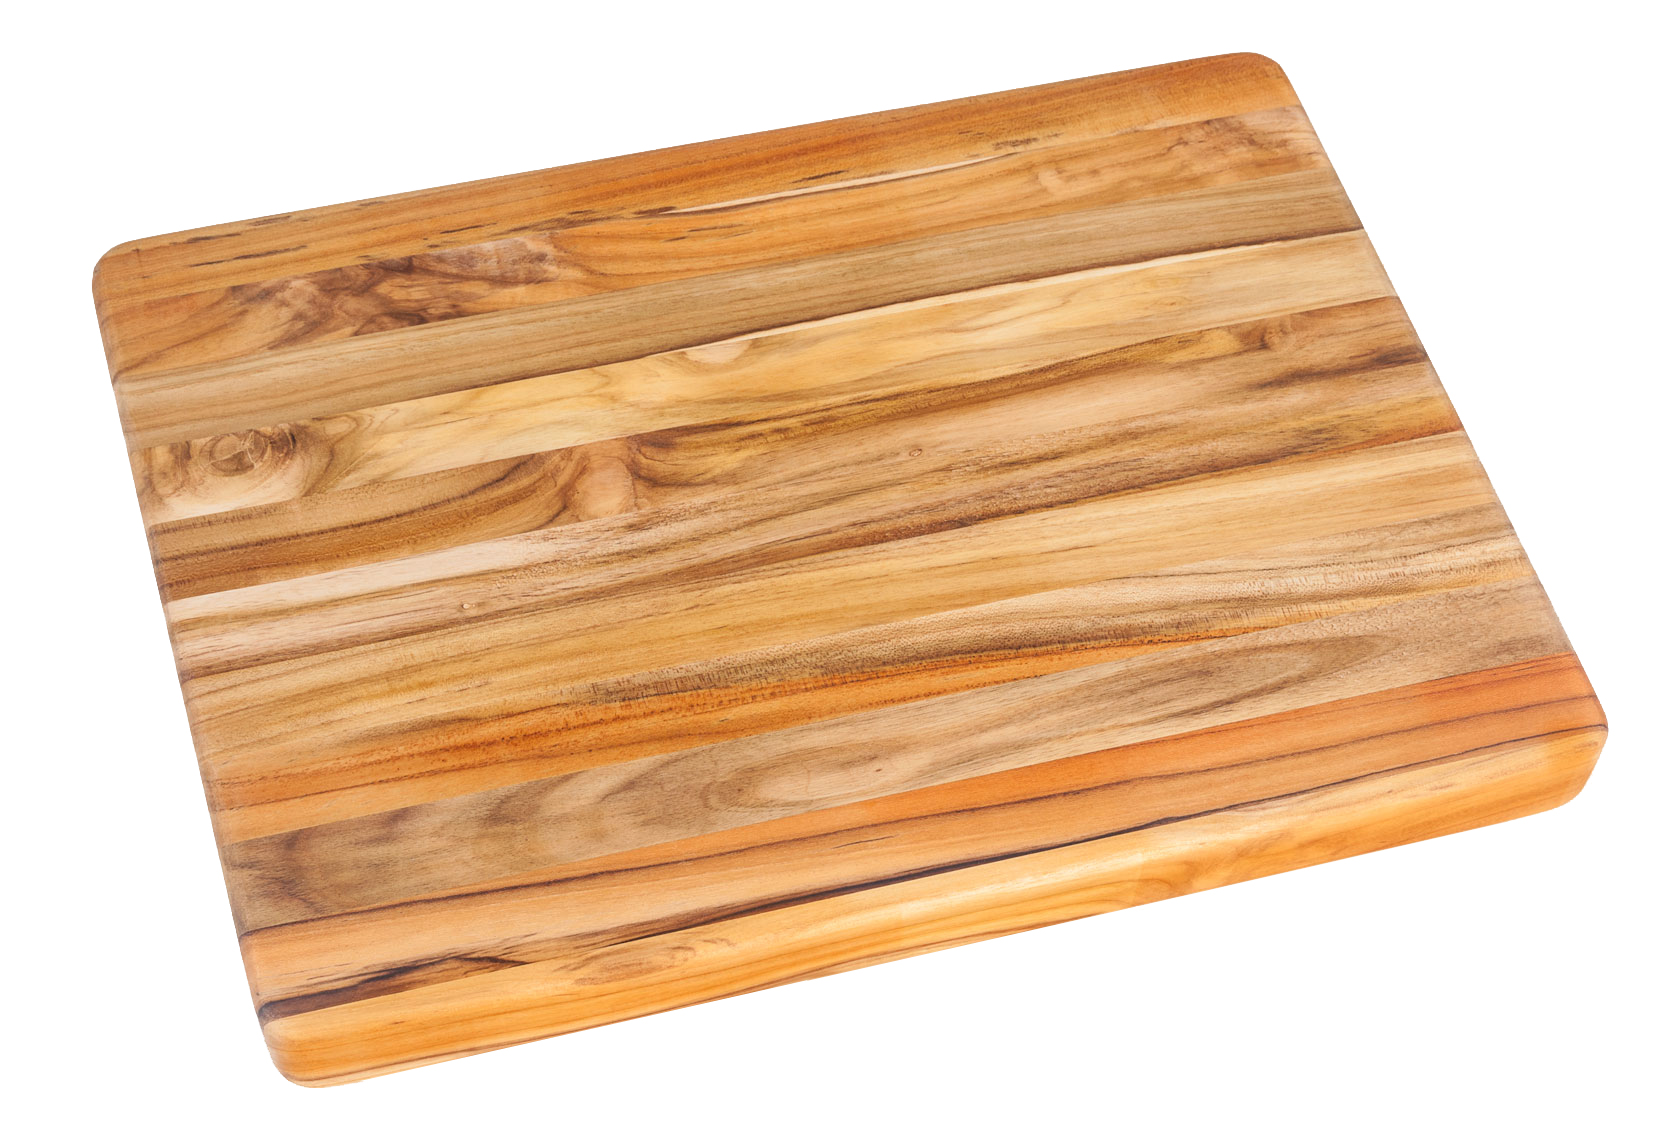 Proteak Medium, Edge-Grain Teak Cutting Board – 20